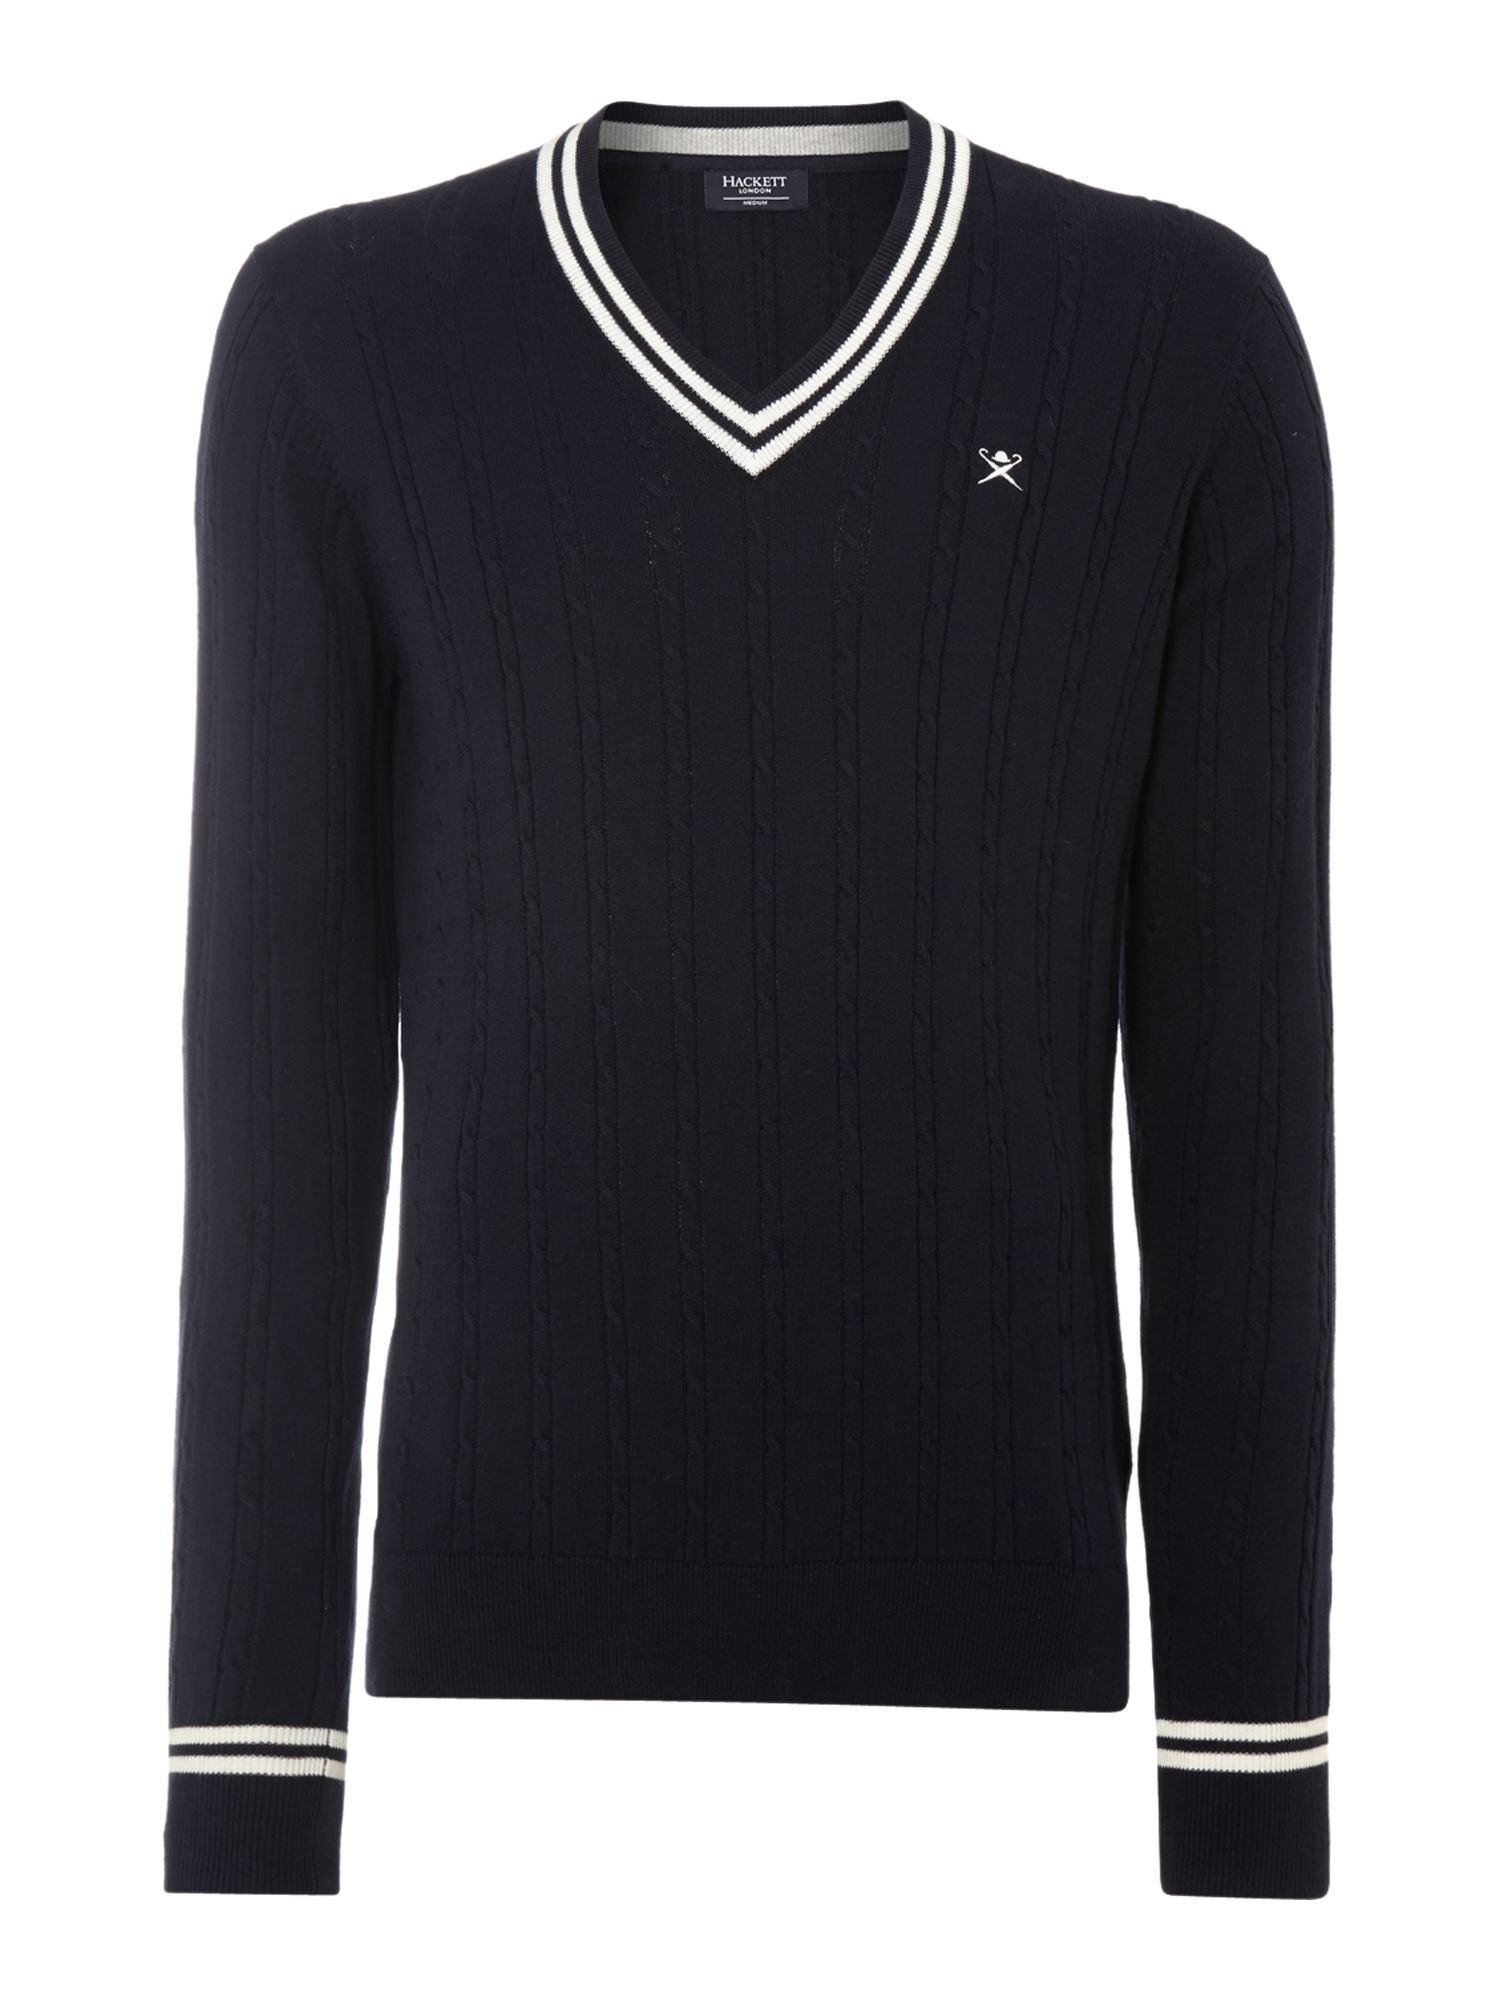 Fine cable knit cricket jumper